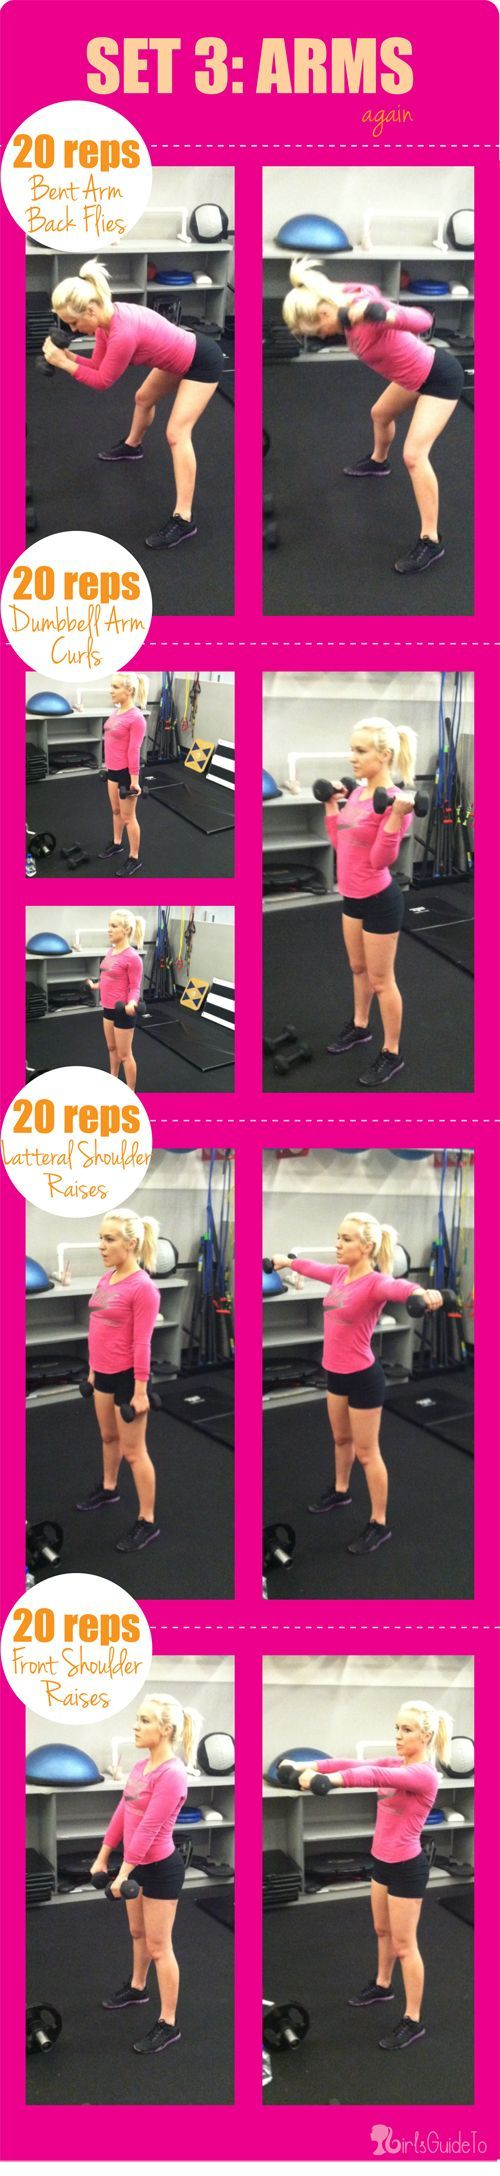 Arms Workout www.thepageantplanet.com